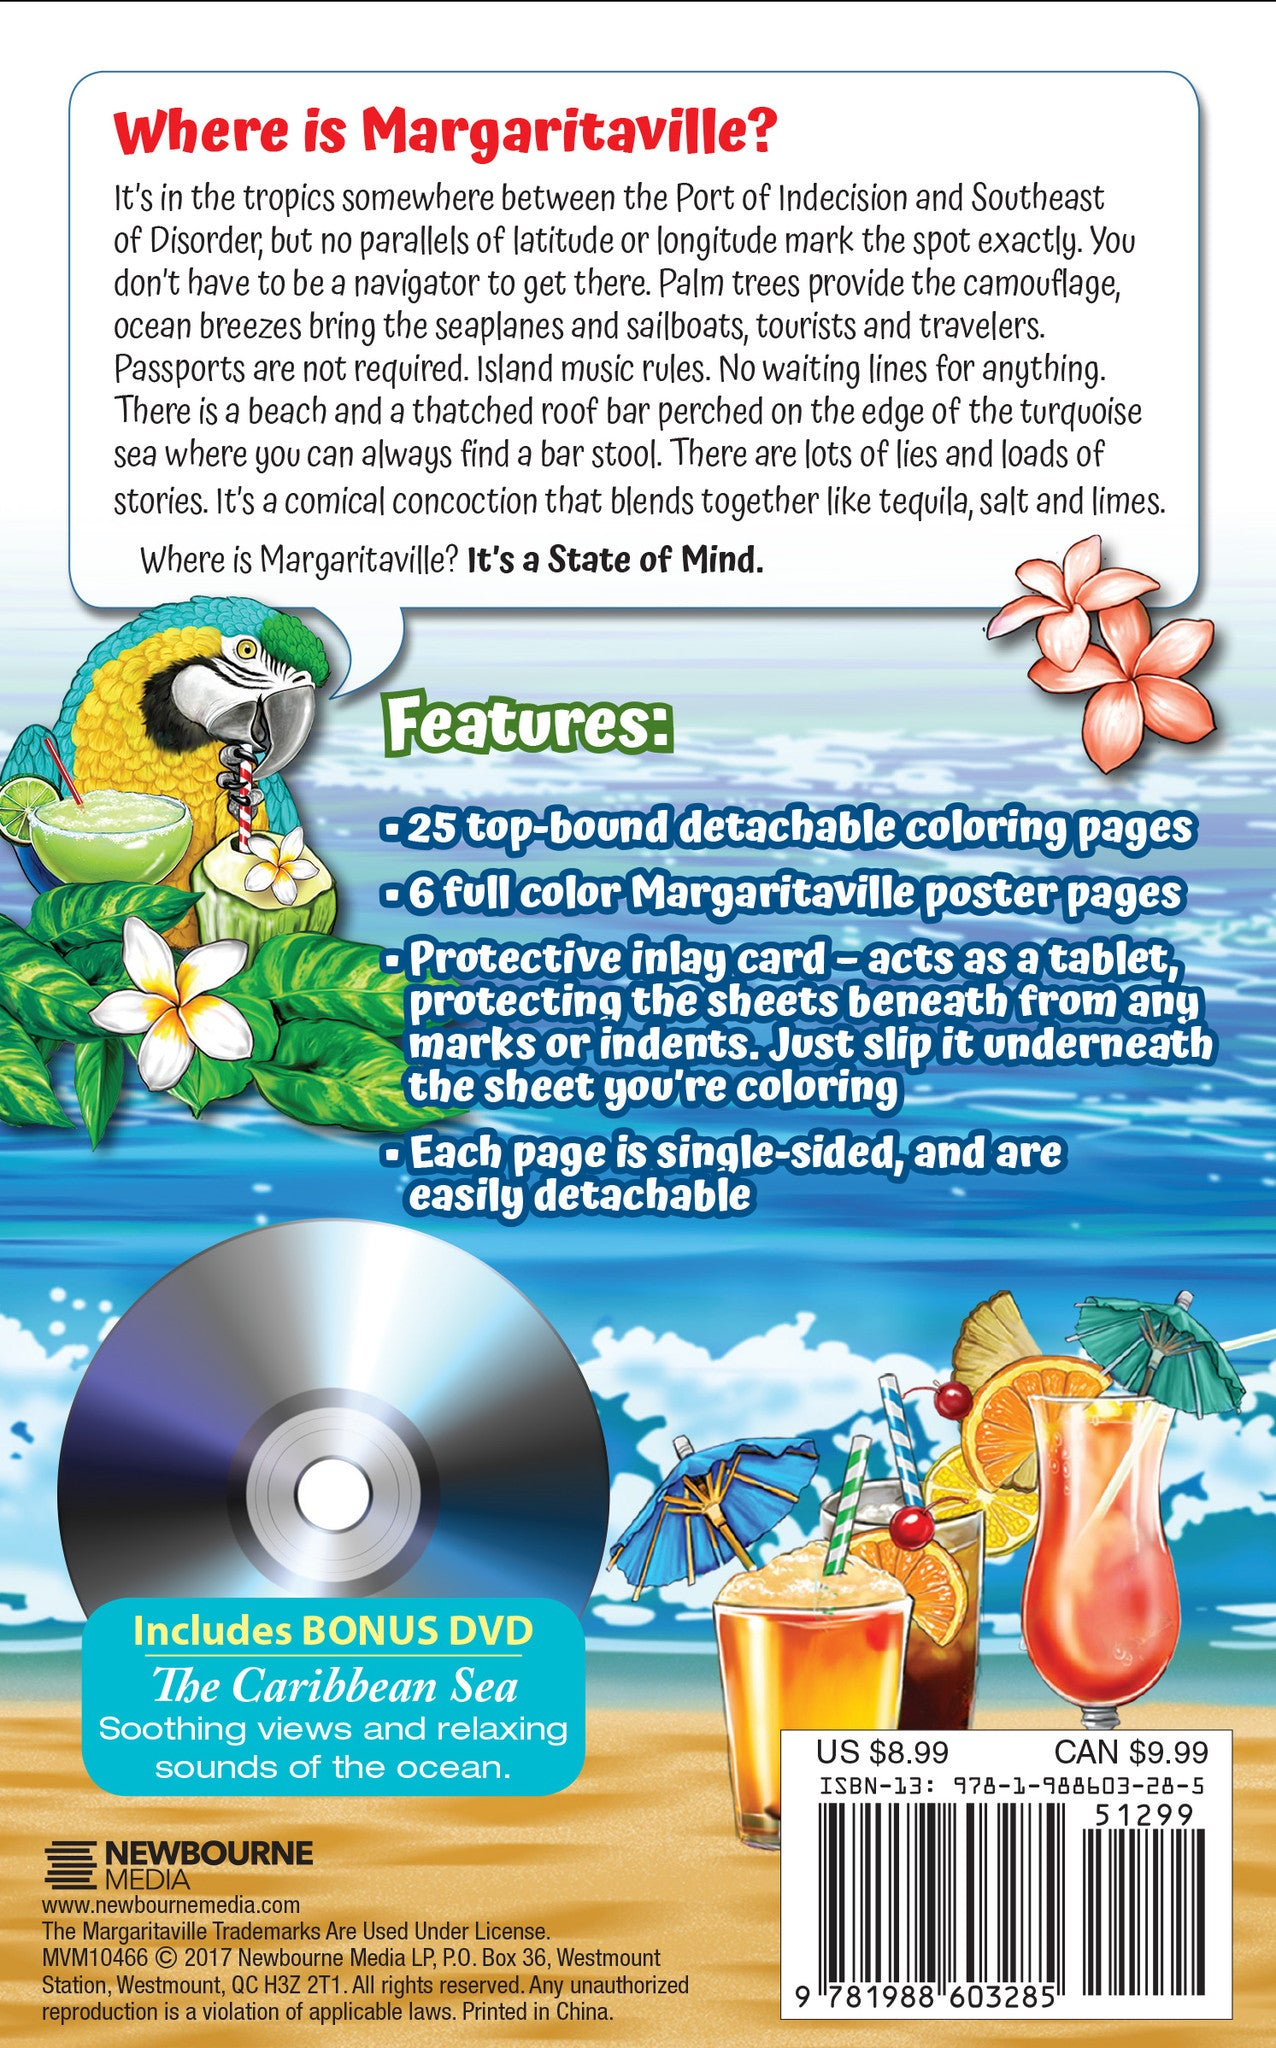 Margaritaville 5 OClock Somewhere Adult Coloring Book With Poster Images And DVD Travel Size